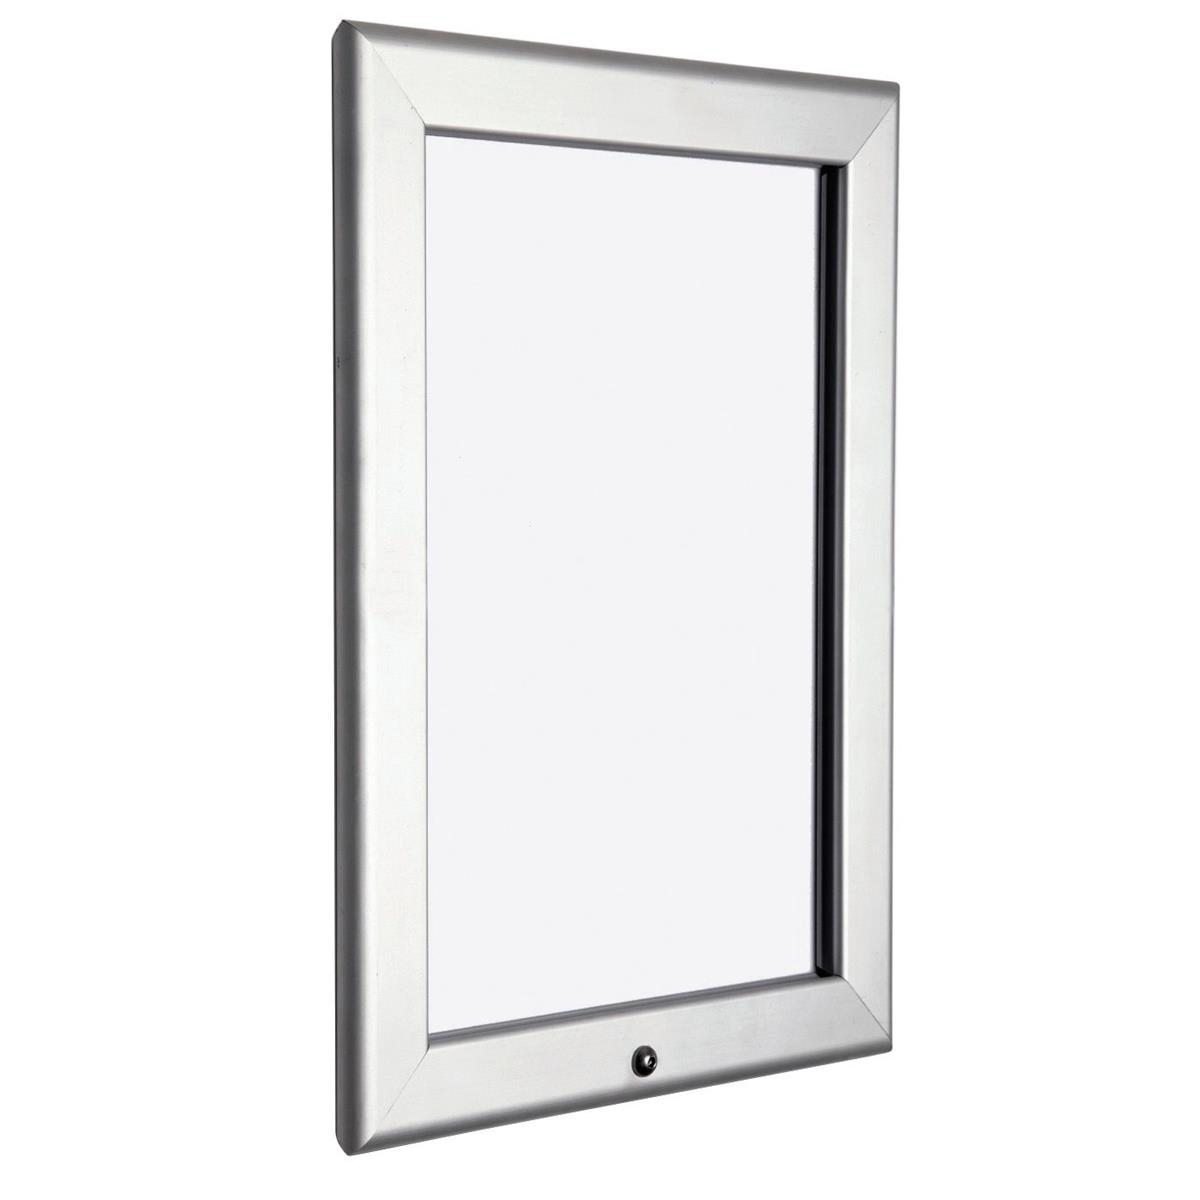 Snap Frame Locking Feature with Allen Key and Screws Front-loading A3 355x20x475mm Silver